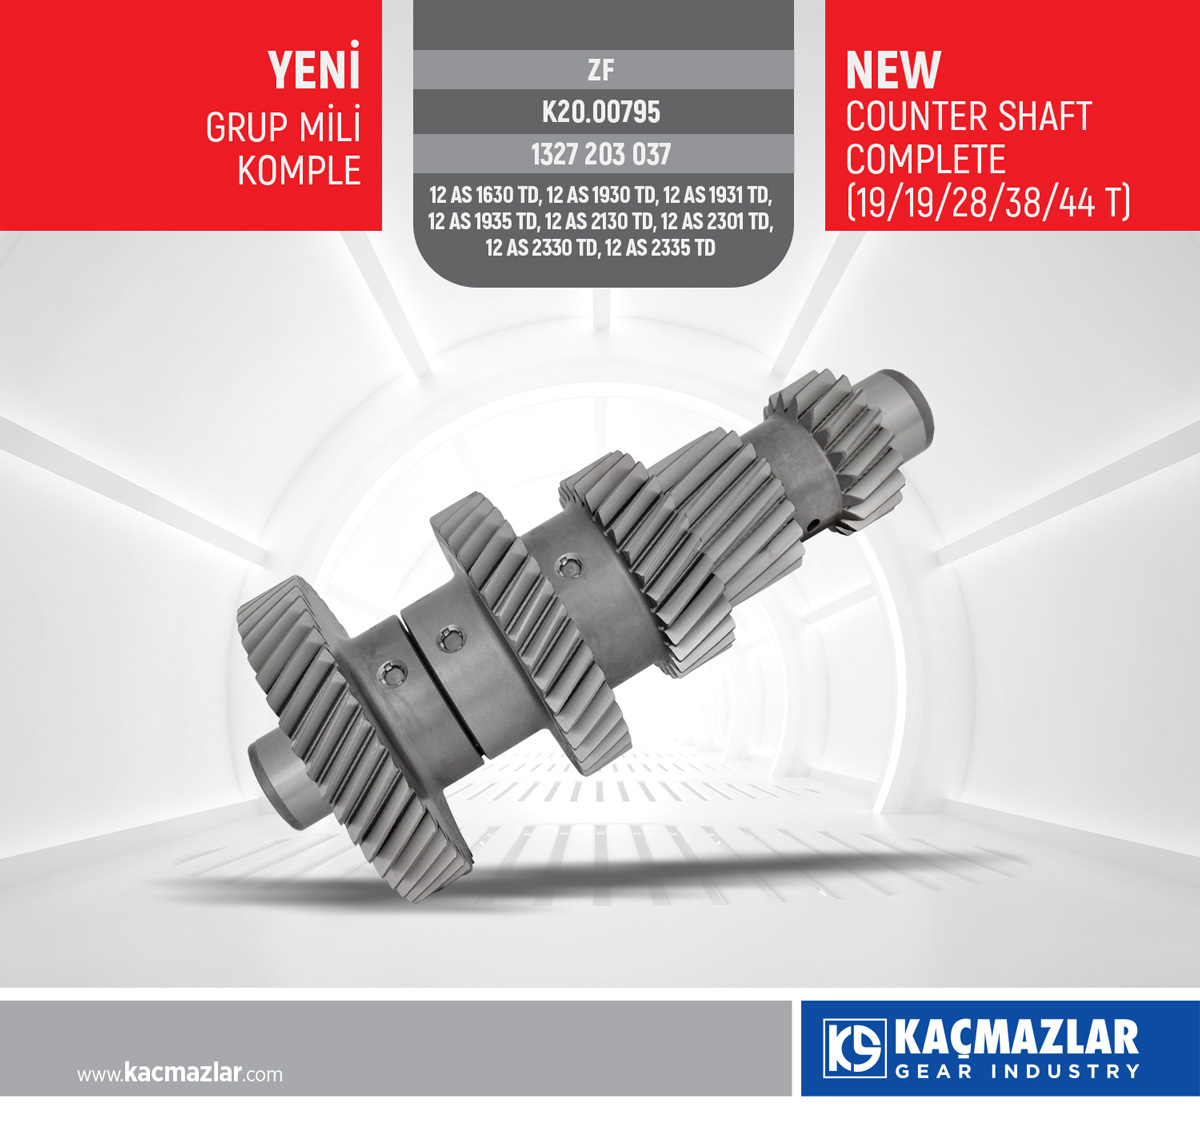 KAMALI MİL - COUNTER SHAFT COMPLETE (19/19/28/38/44 T) / ZF